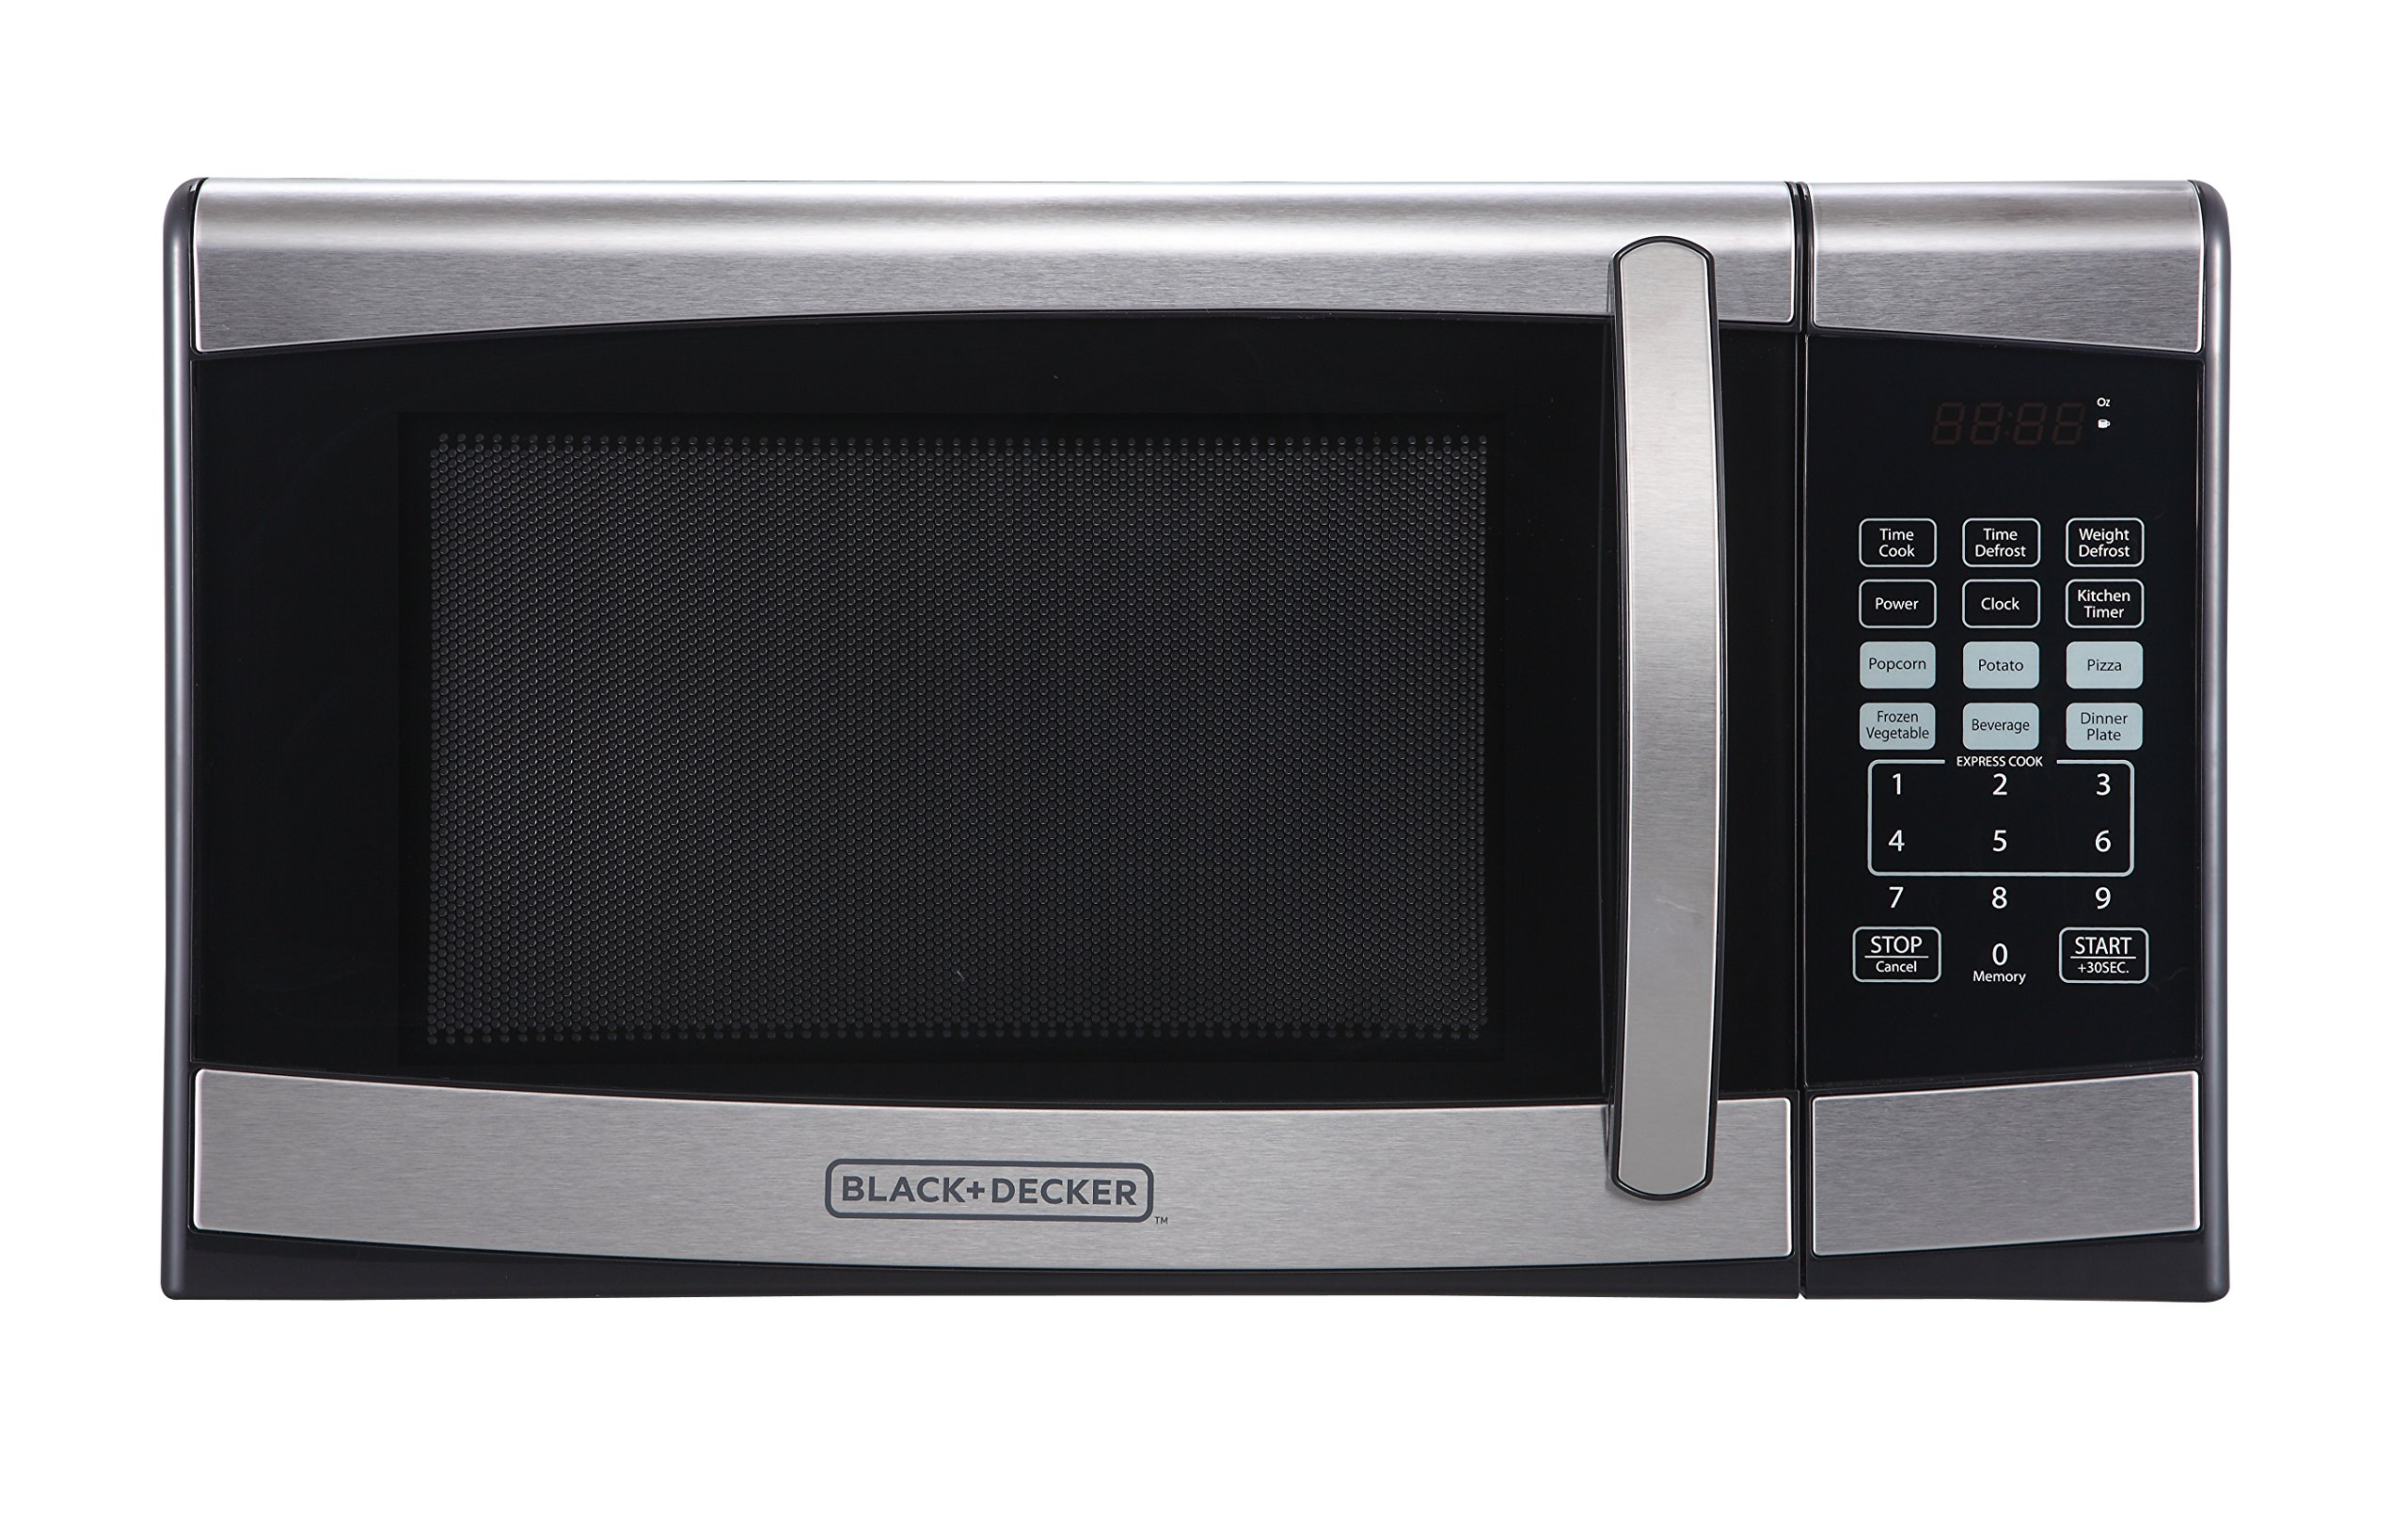 BLACK+DECKER EM925AZE-P 0.9 Cubic Foot 900 Watt Stainless Steel Microwave with Turntable, Medium Silver